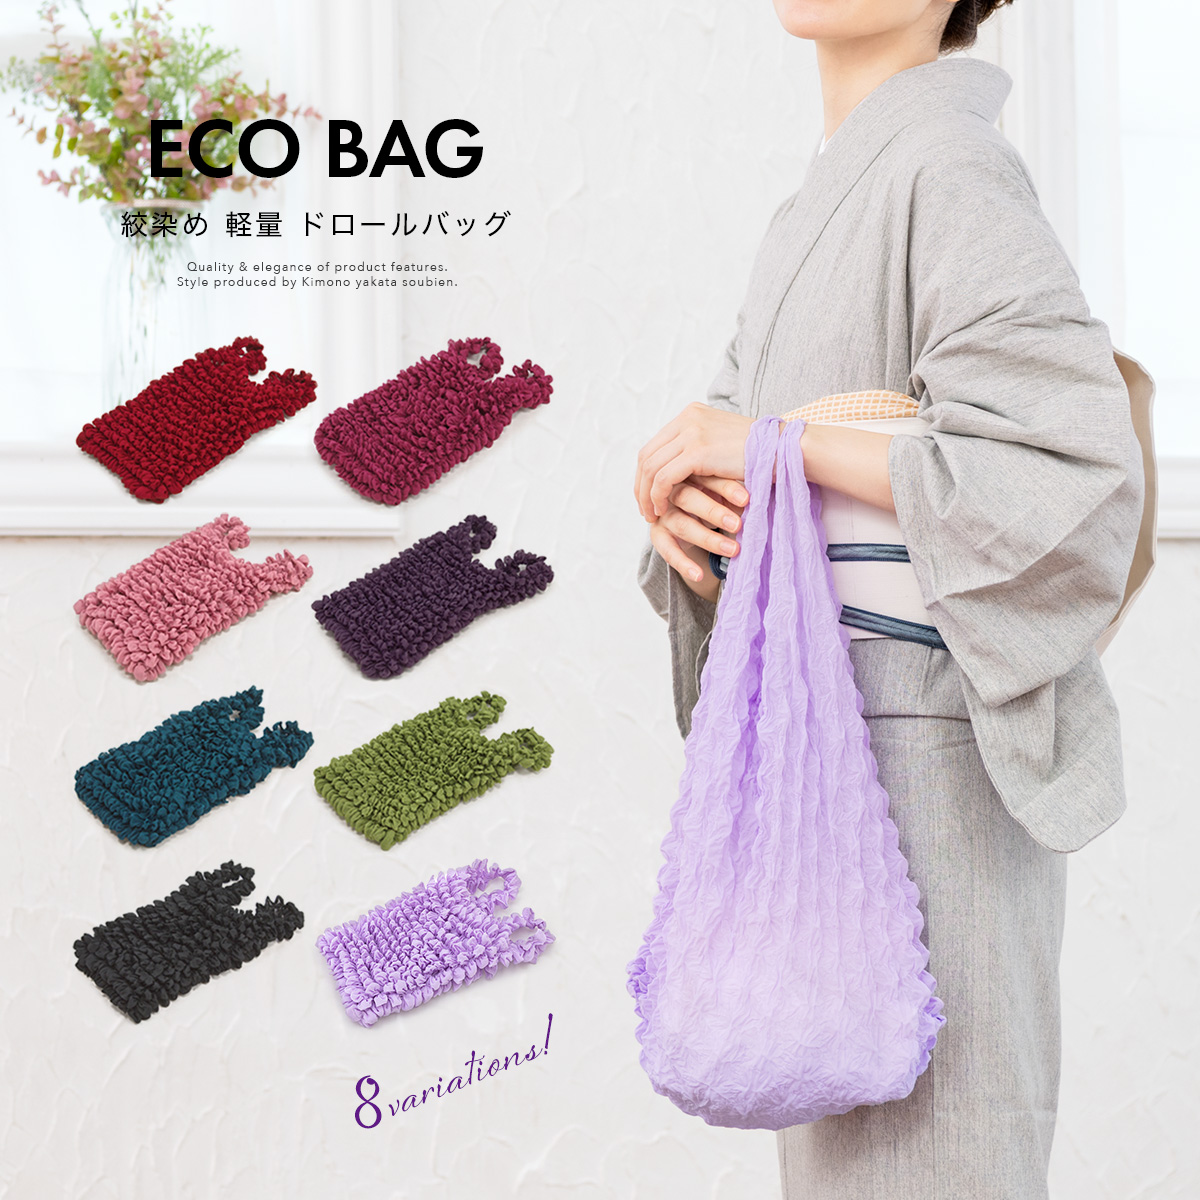 Eco-bag accessory case reducing work colorful elastic convenient friendship  miscellaneous goods petty person in Japanese dress